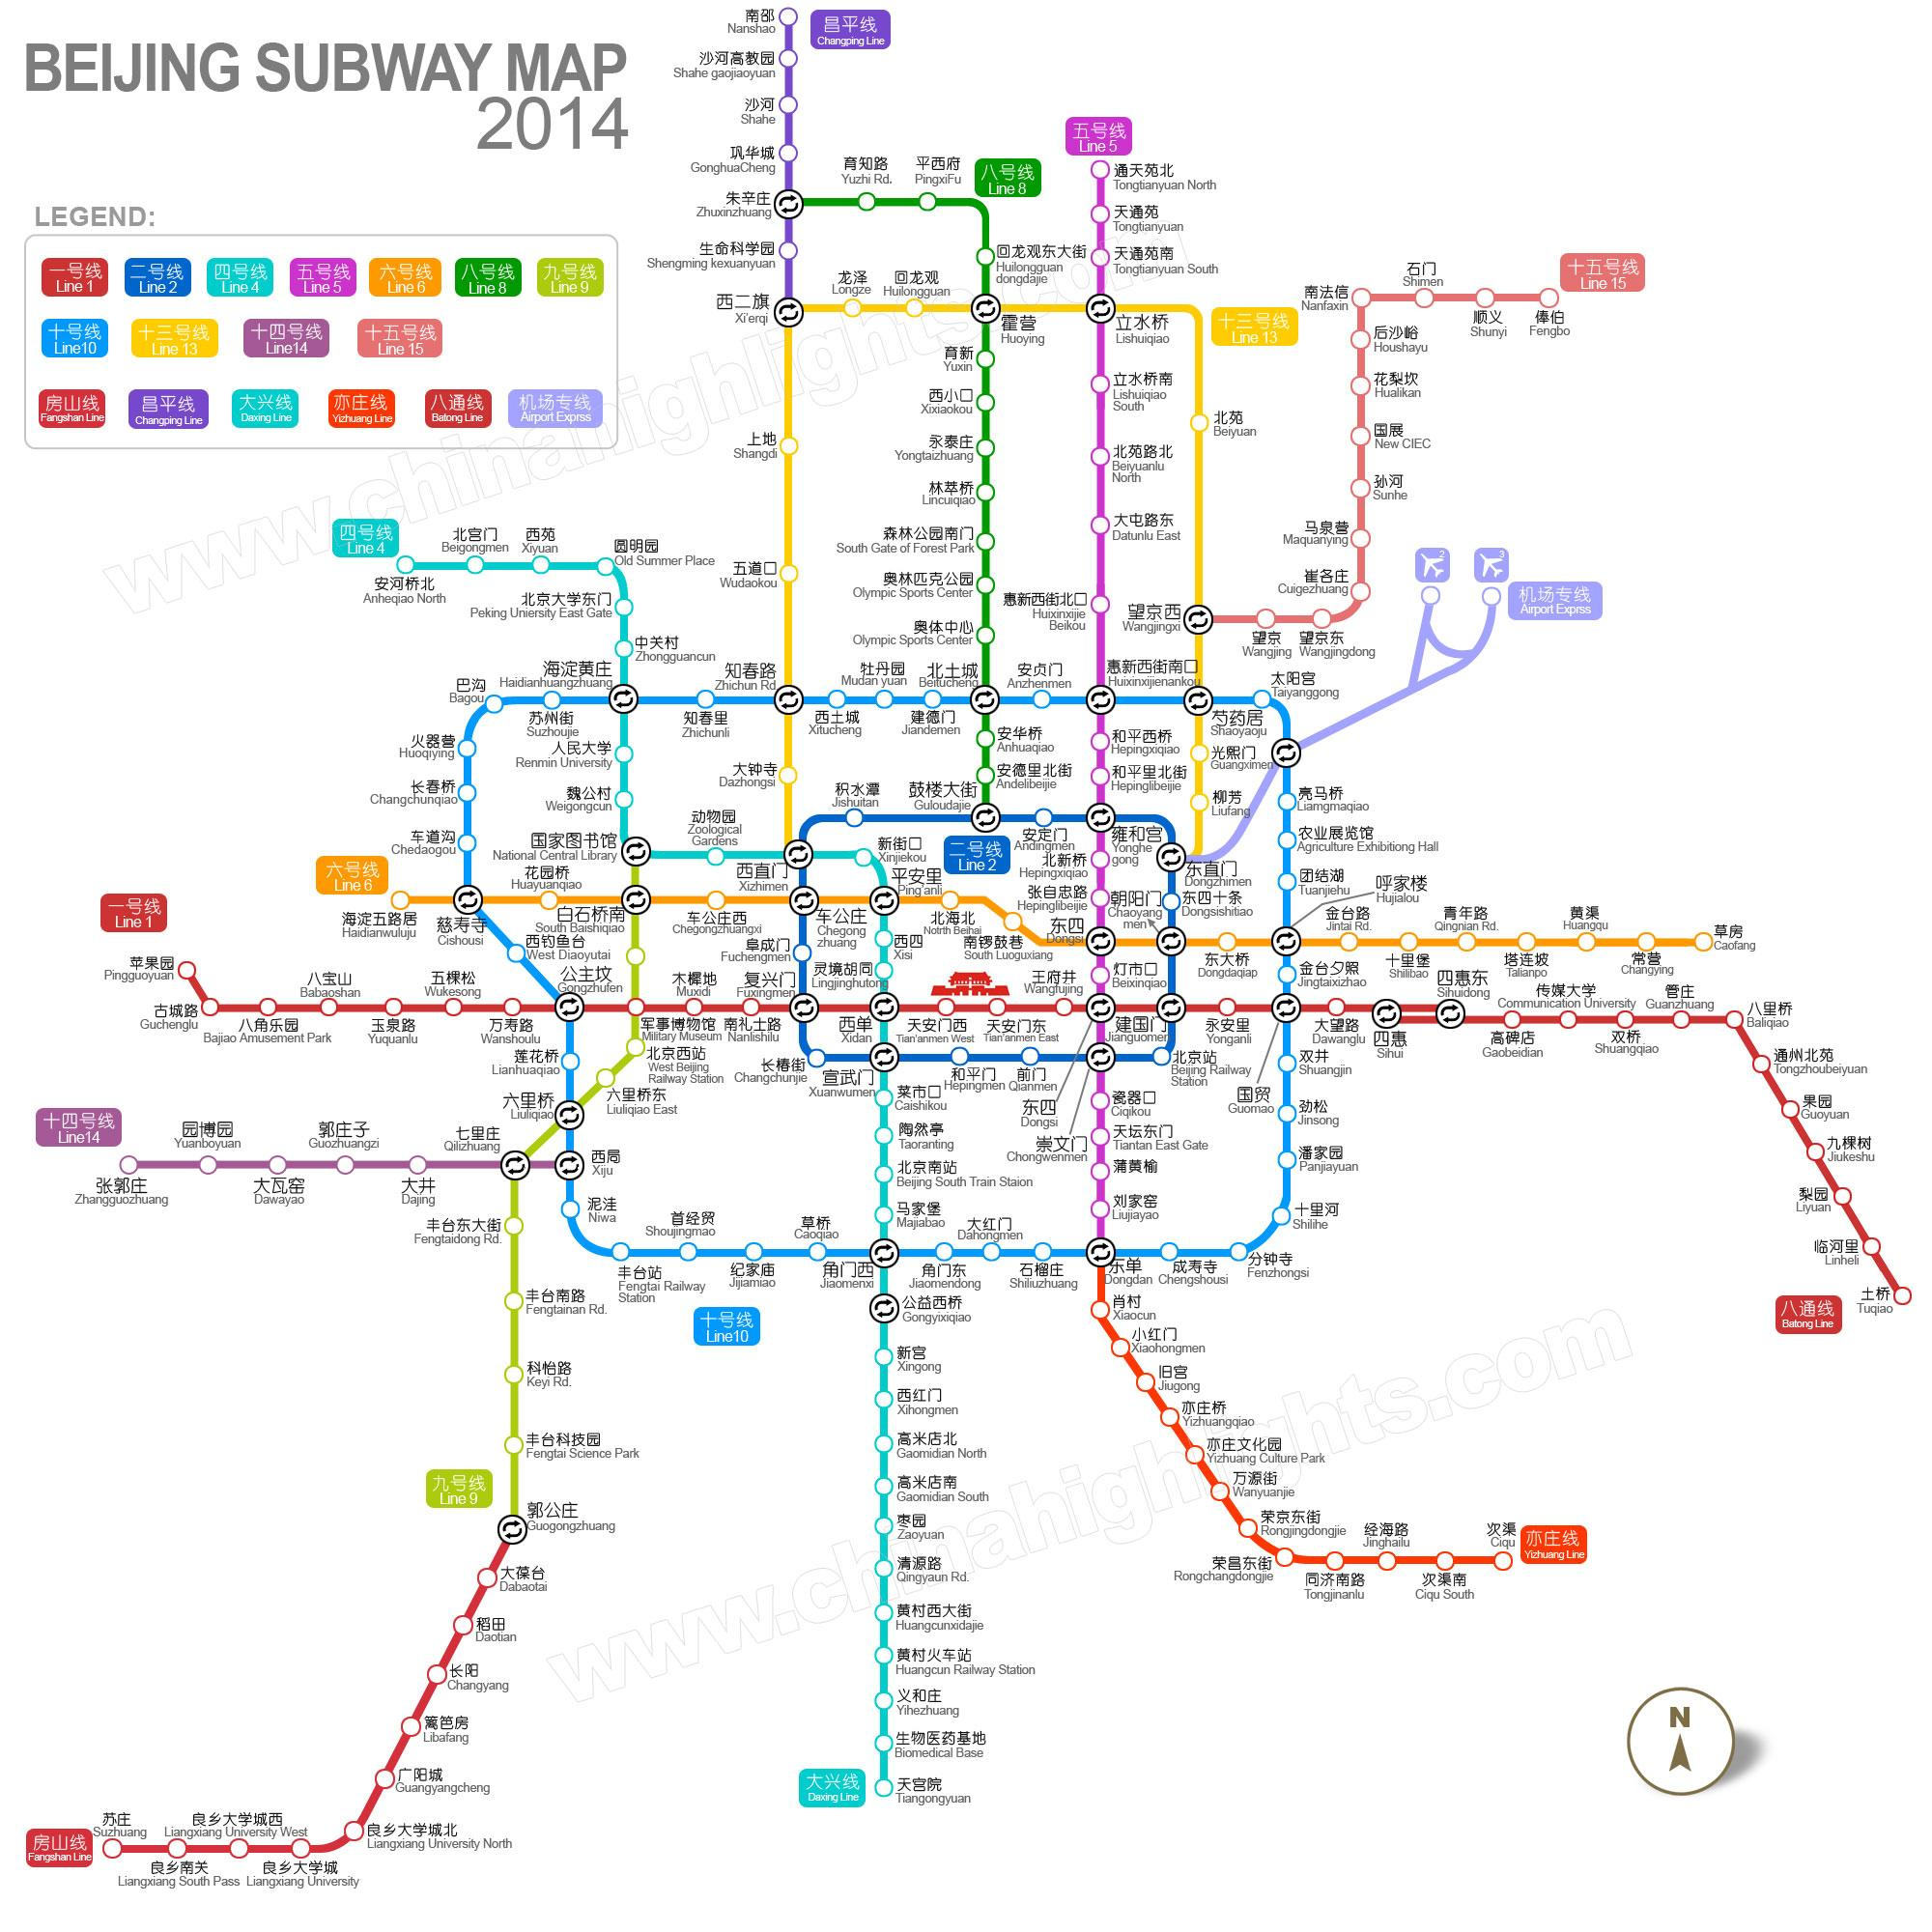 Subway Map Of Beijing